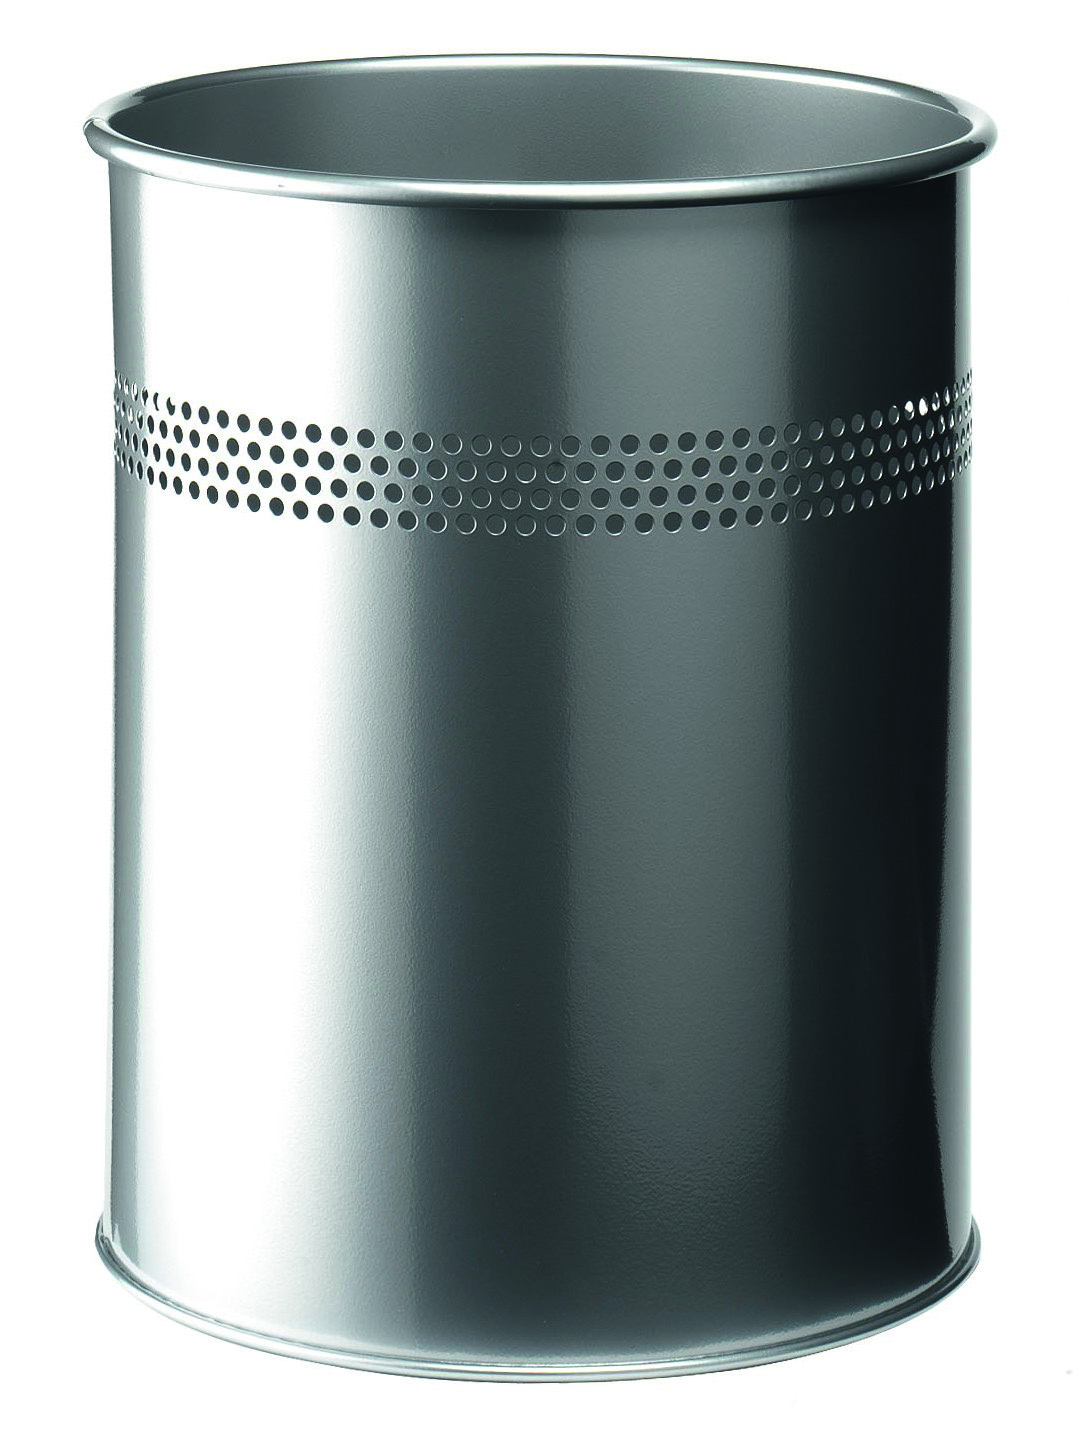 Rubbish Bins Durable Waste Bin Metal Round Perforated 15L 30mm Silver 330023